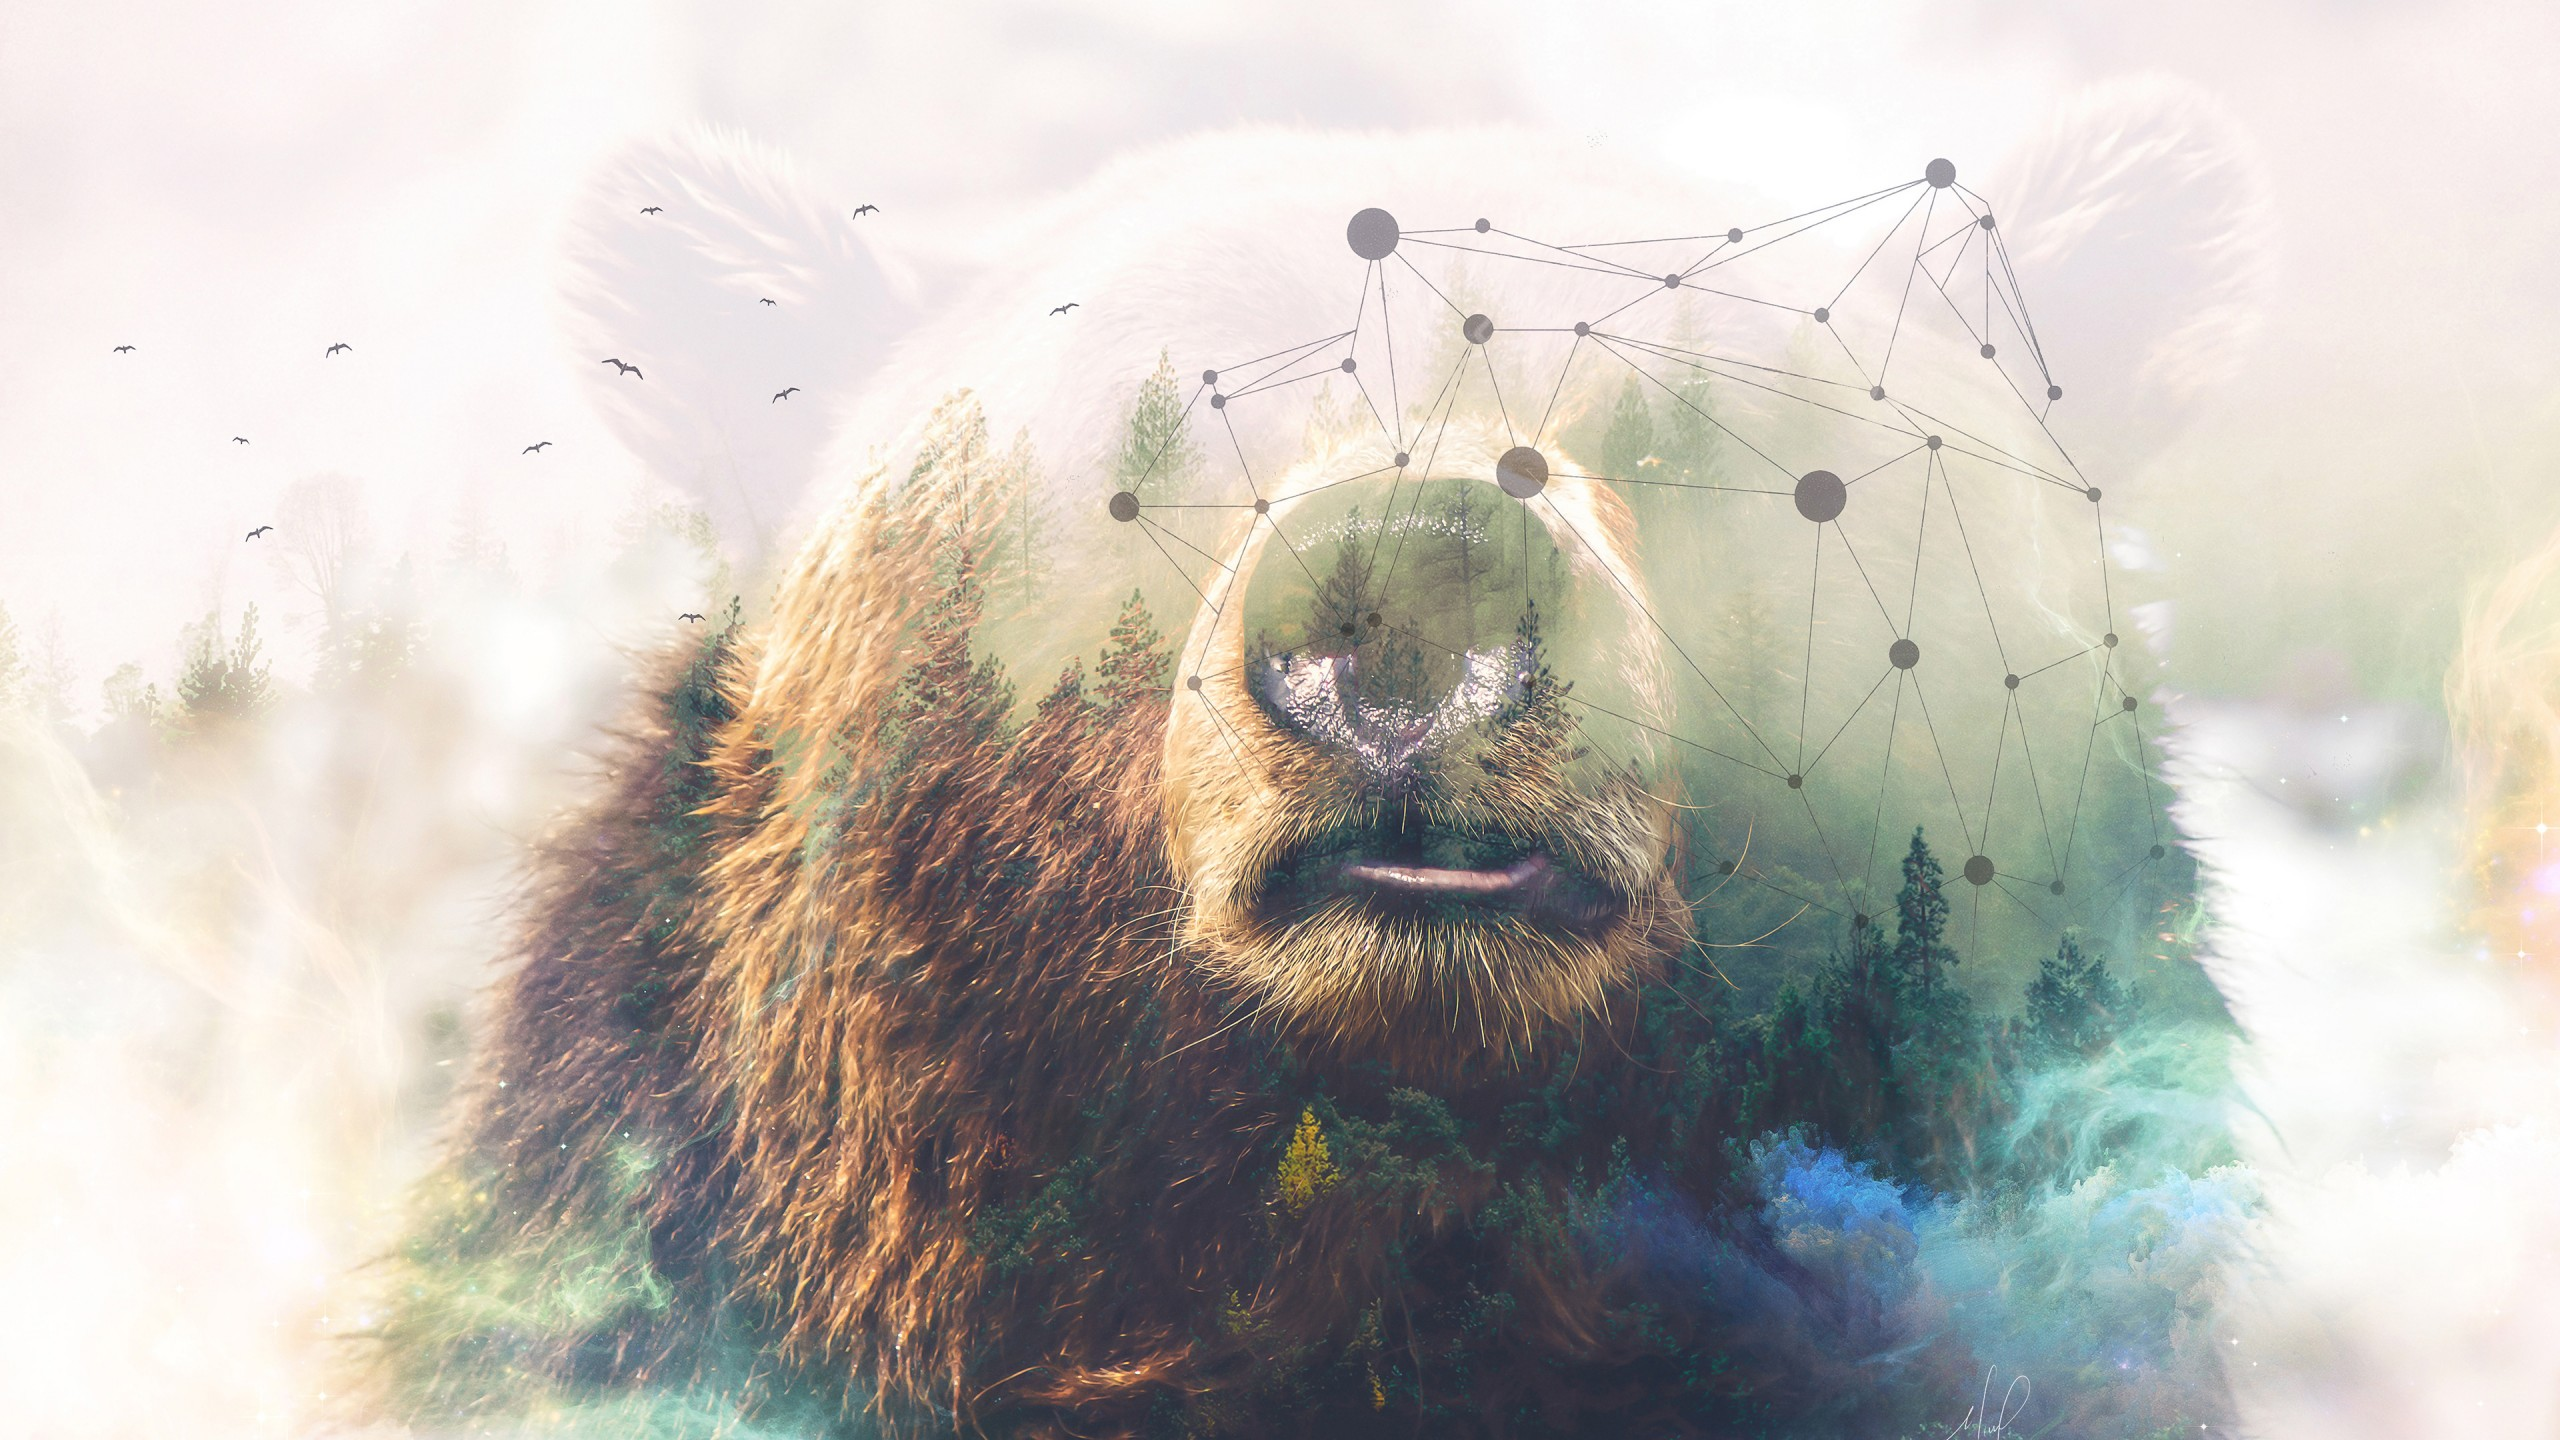 Why So Serious Wallpaper Iphone 6 Grizzly Bear Forest Double Exposure 4k Wallpapers Hd